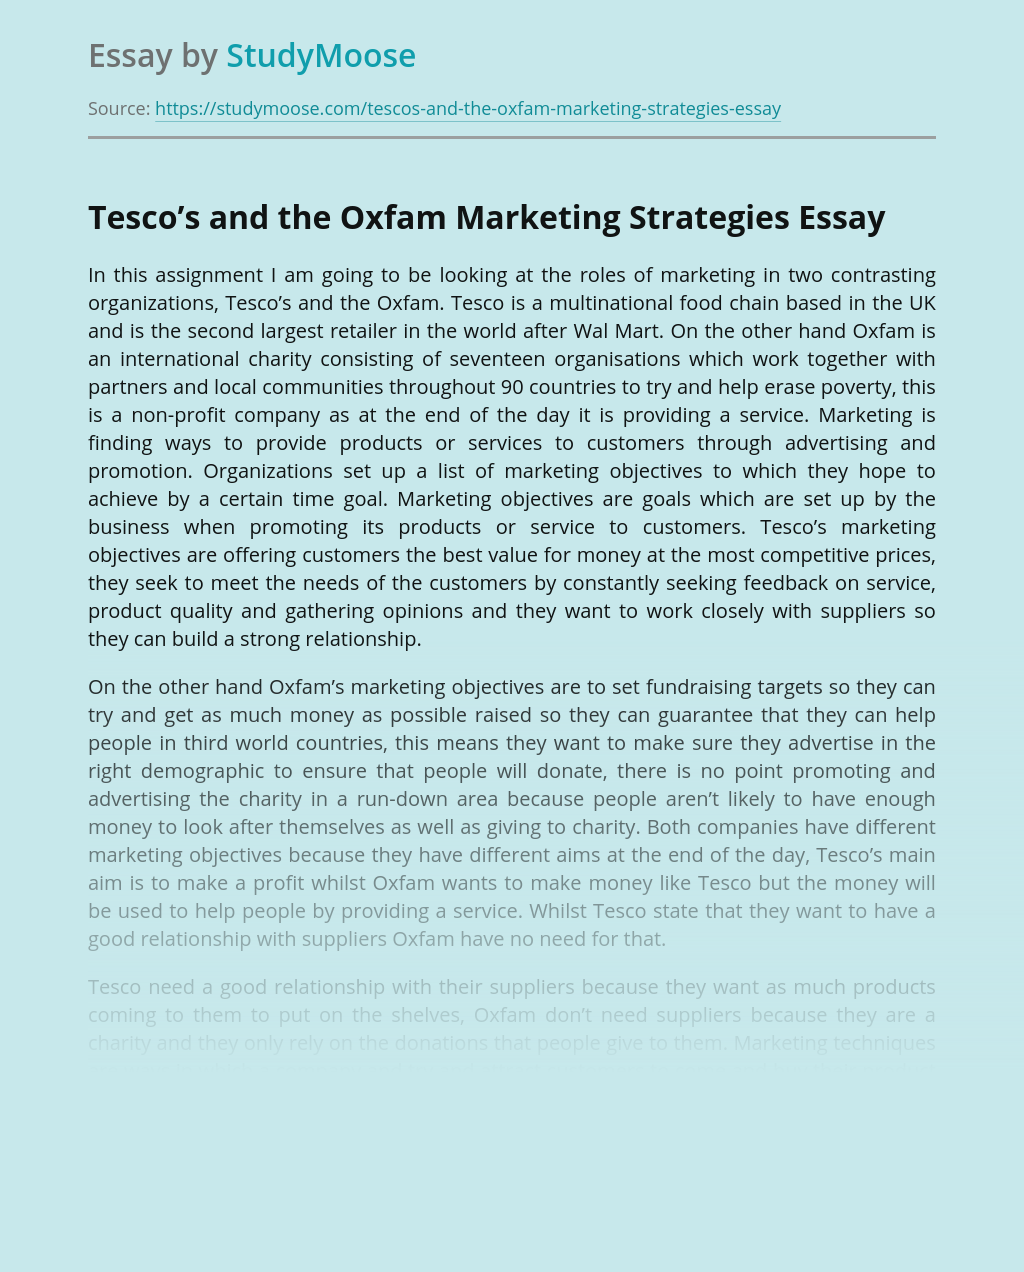 Tesco's and the Oxfam Marketing Strategies